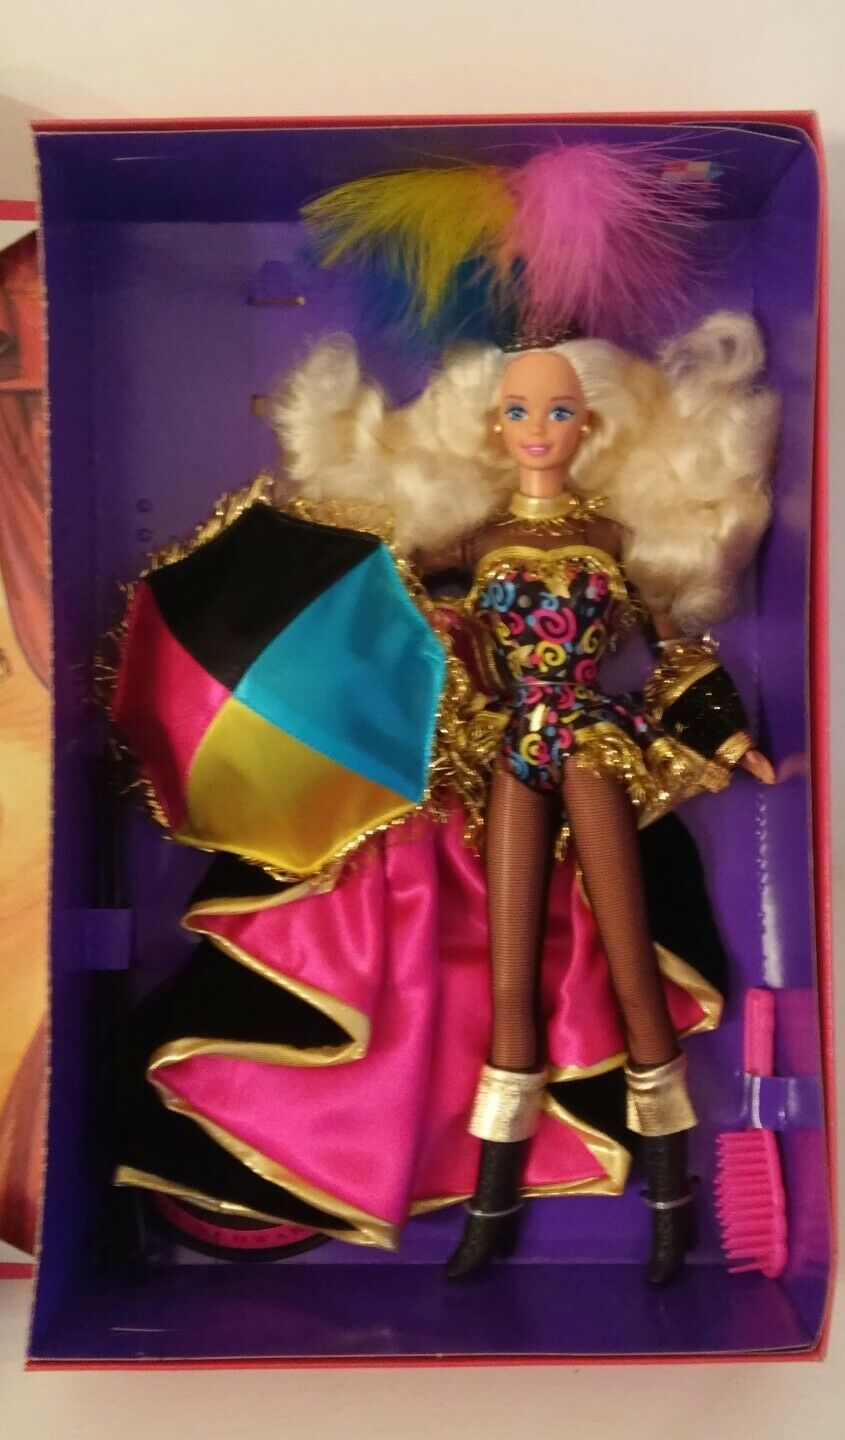 Barbie Circus Star, FAO nero 1994 nrfb